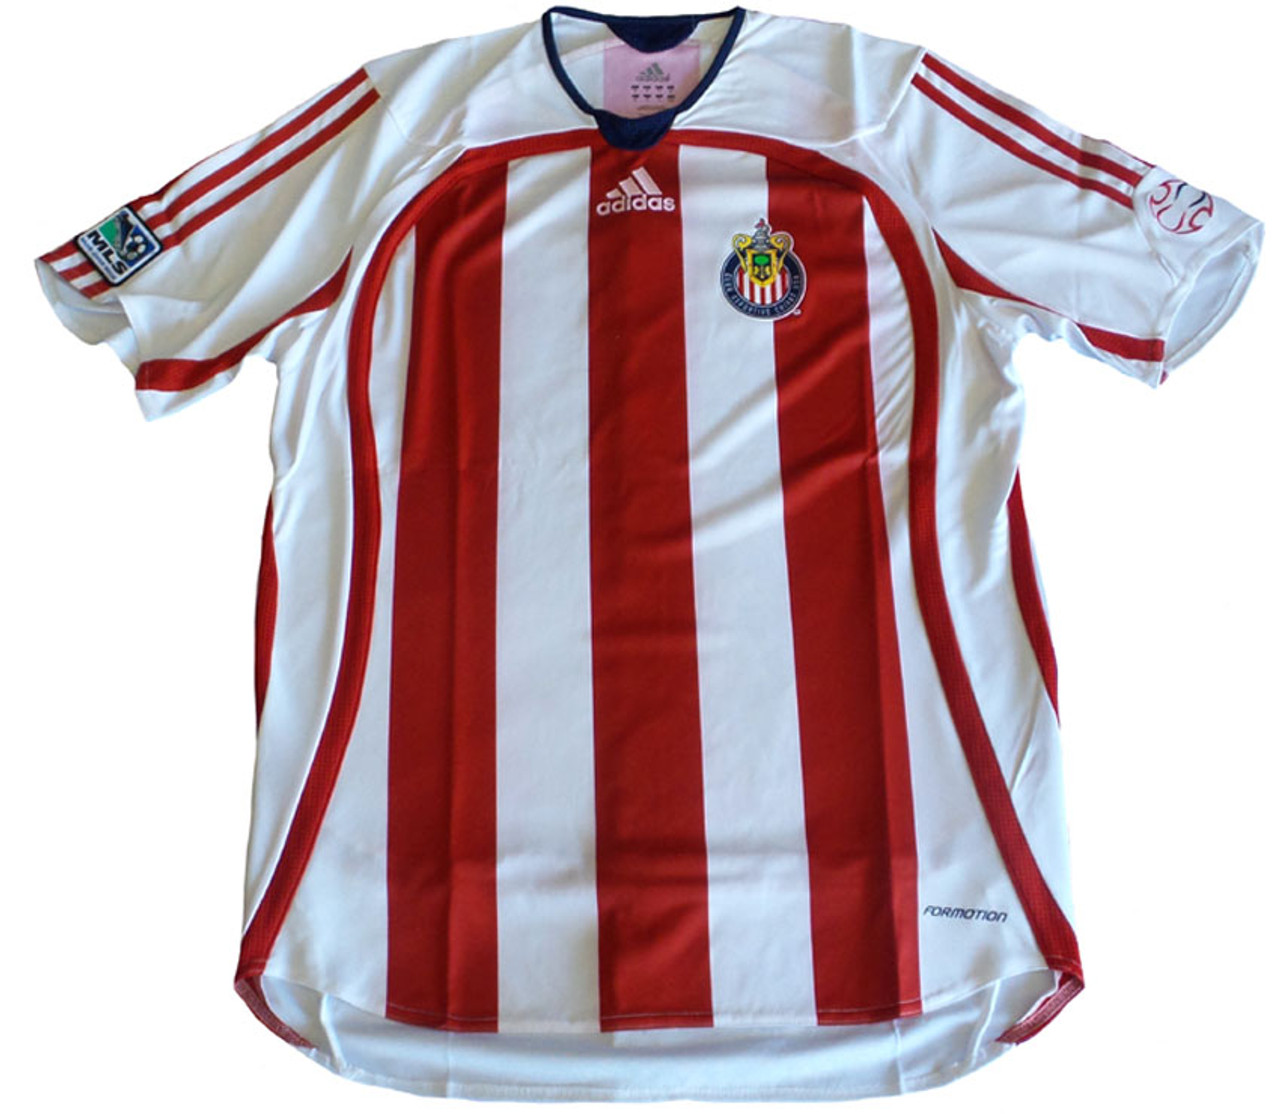 info for a1f9e ad799 ADIDAS CHIVAS USA 2006 AWAY PLAYERS VERSION JERSEY